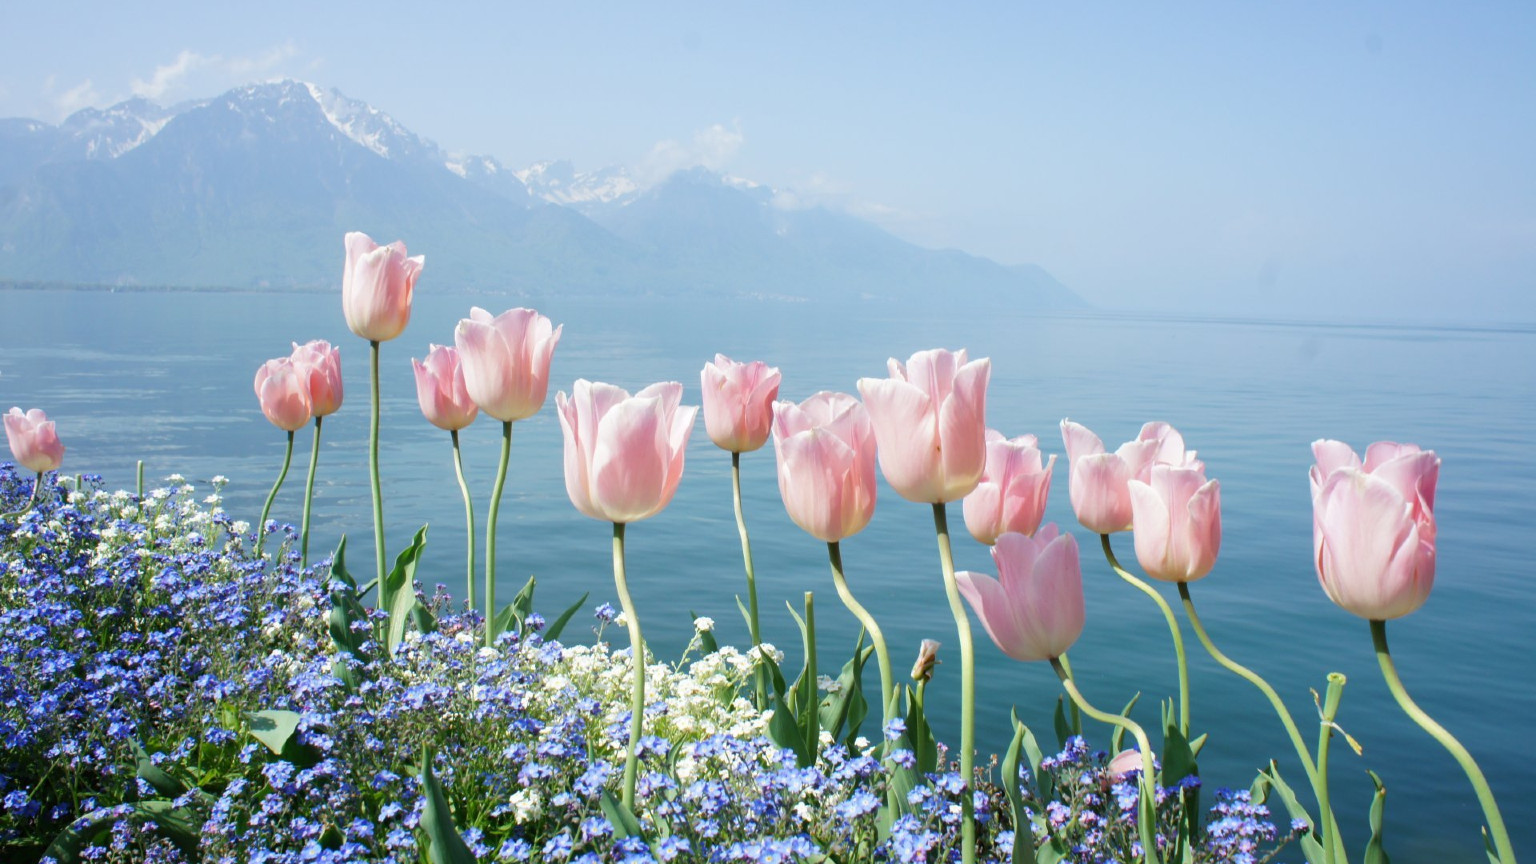 Best Spring vacations, places to visit in Spring